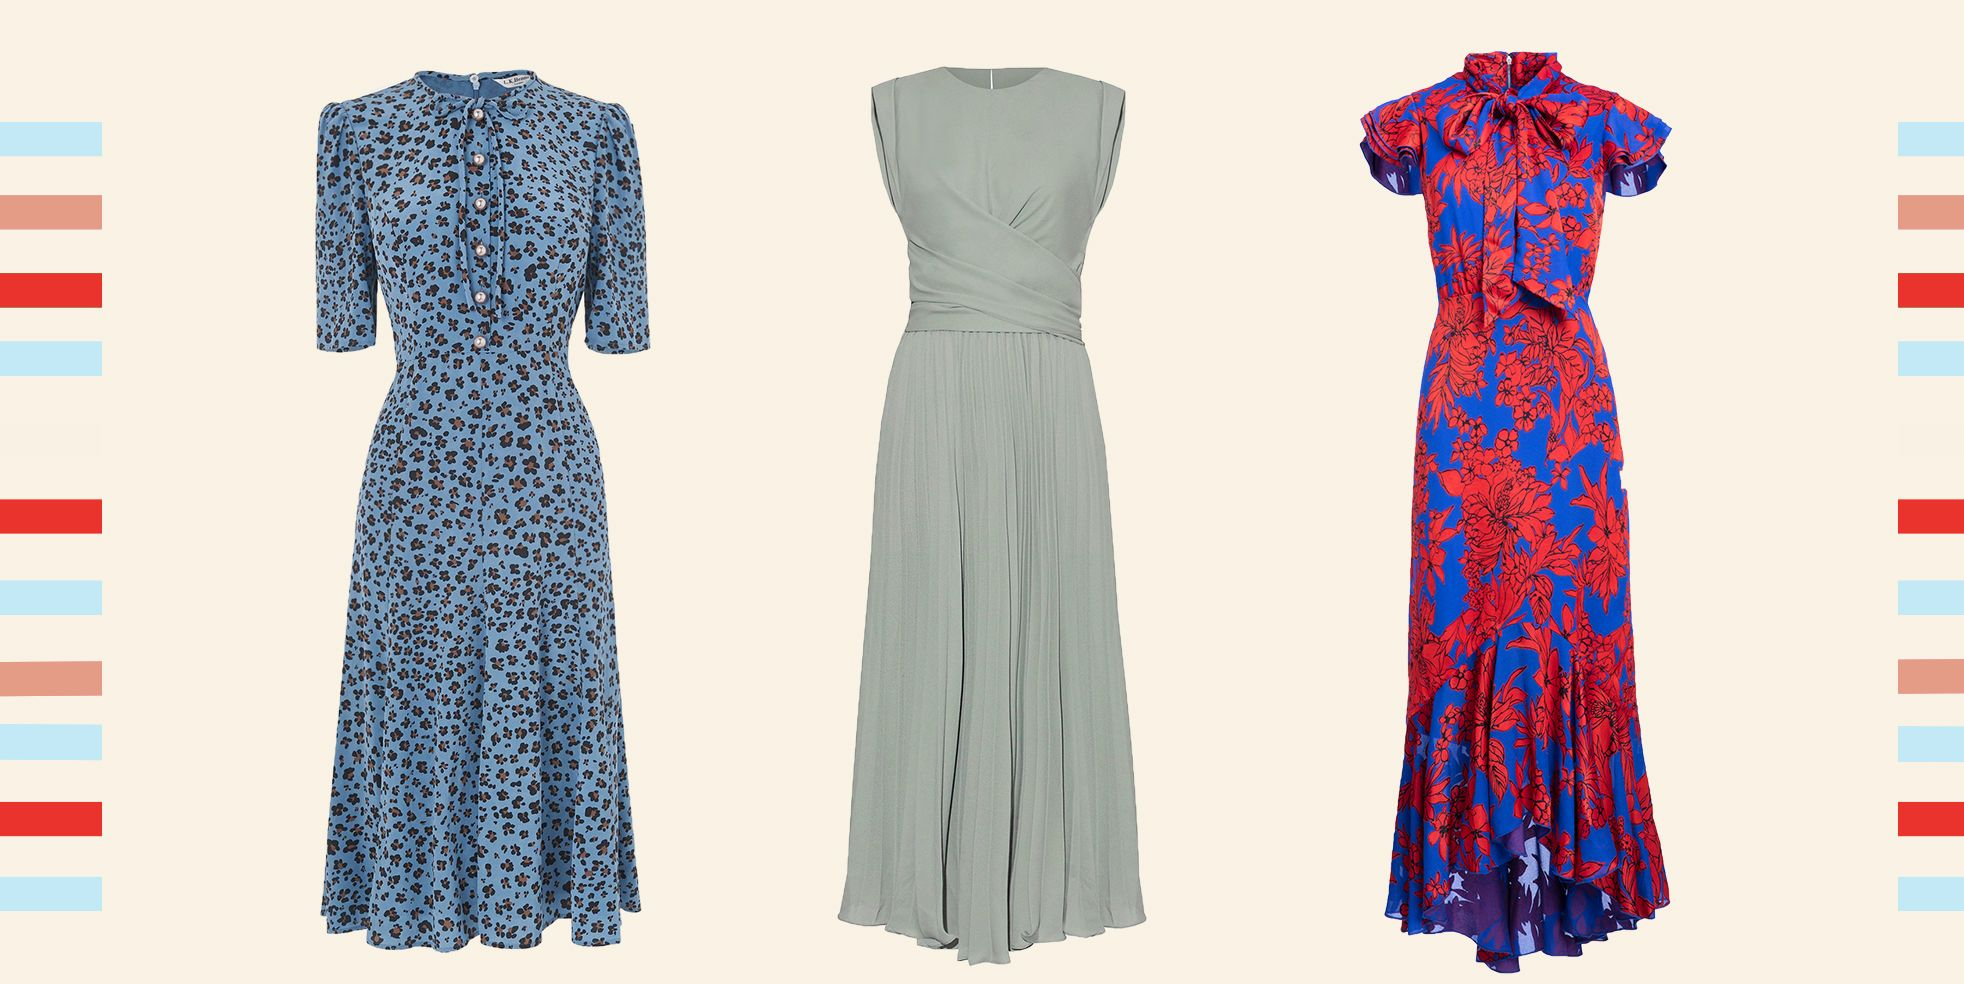 20 Guest Dresses For A Winter Wedding What To Wear As Wedding Guest